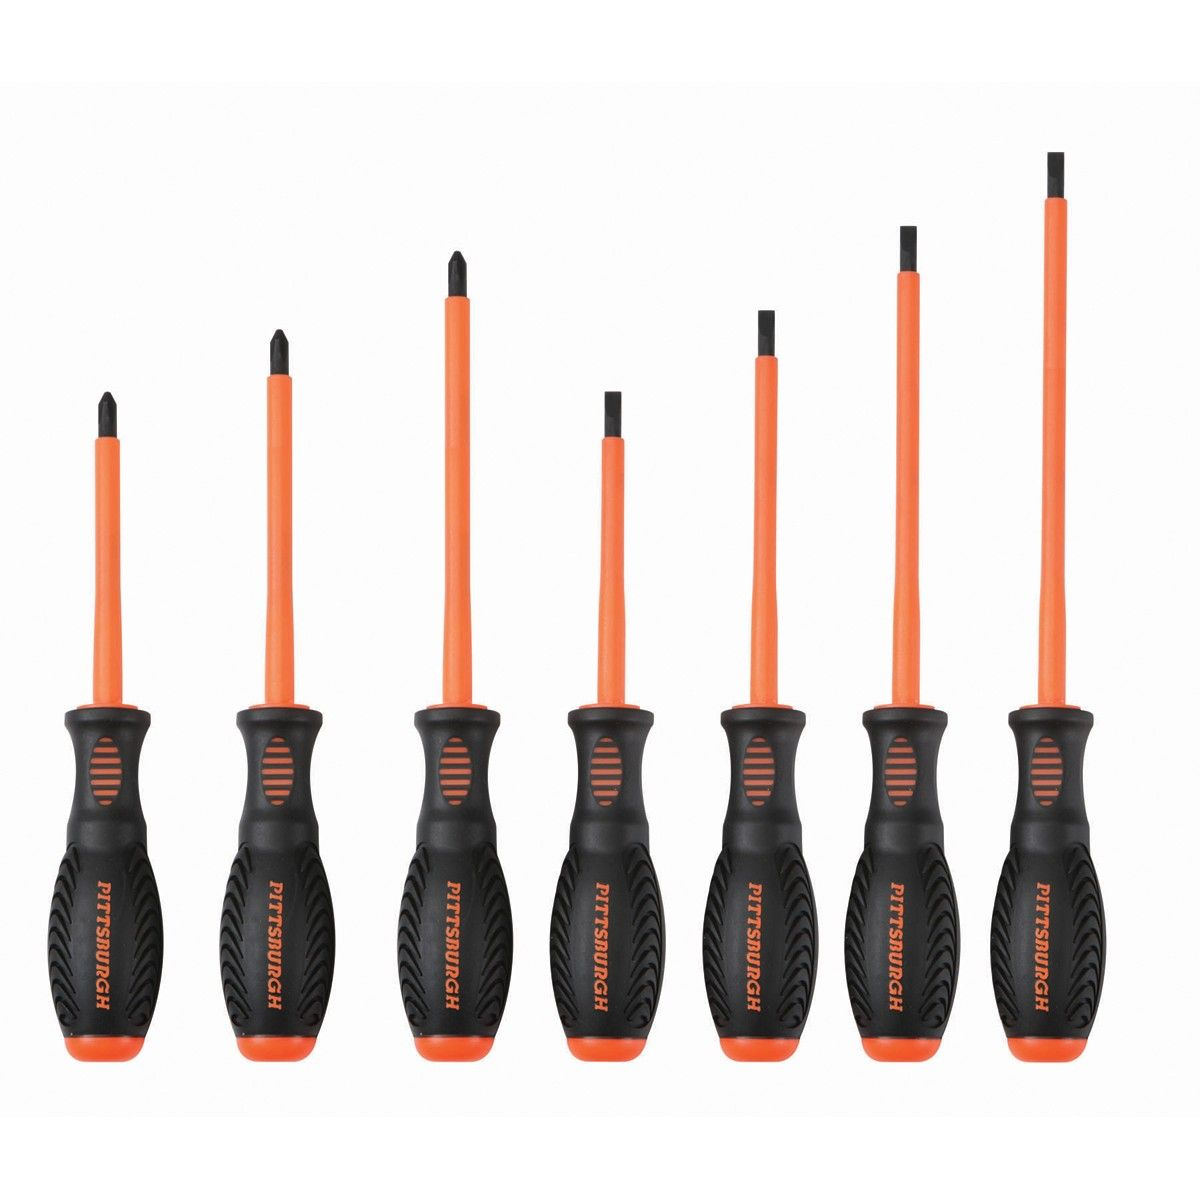 Electrician S Screwdriver Set 7 Pc